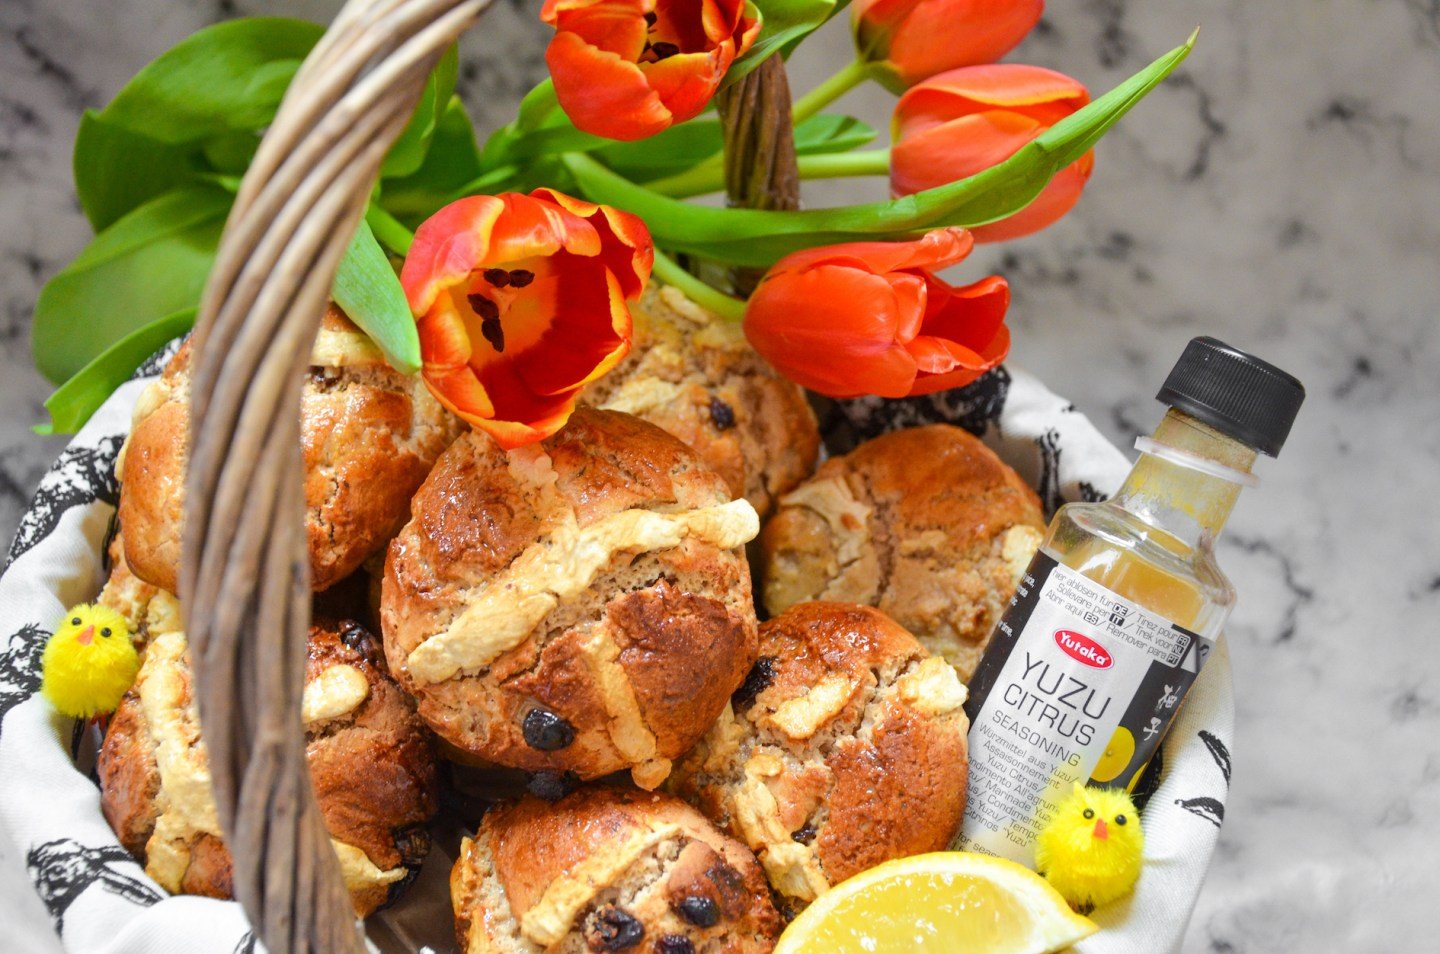 Yuzu and Honey Hot Cross Buns – A Recipe